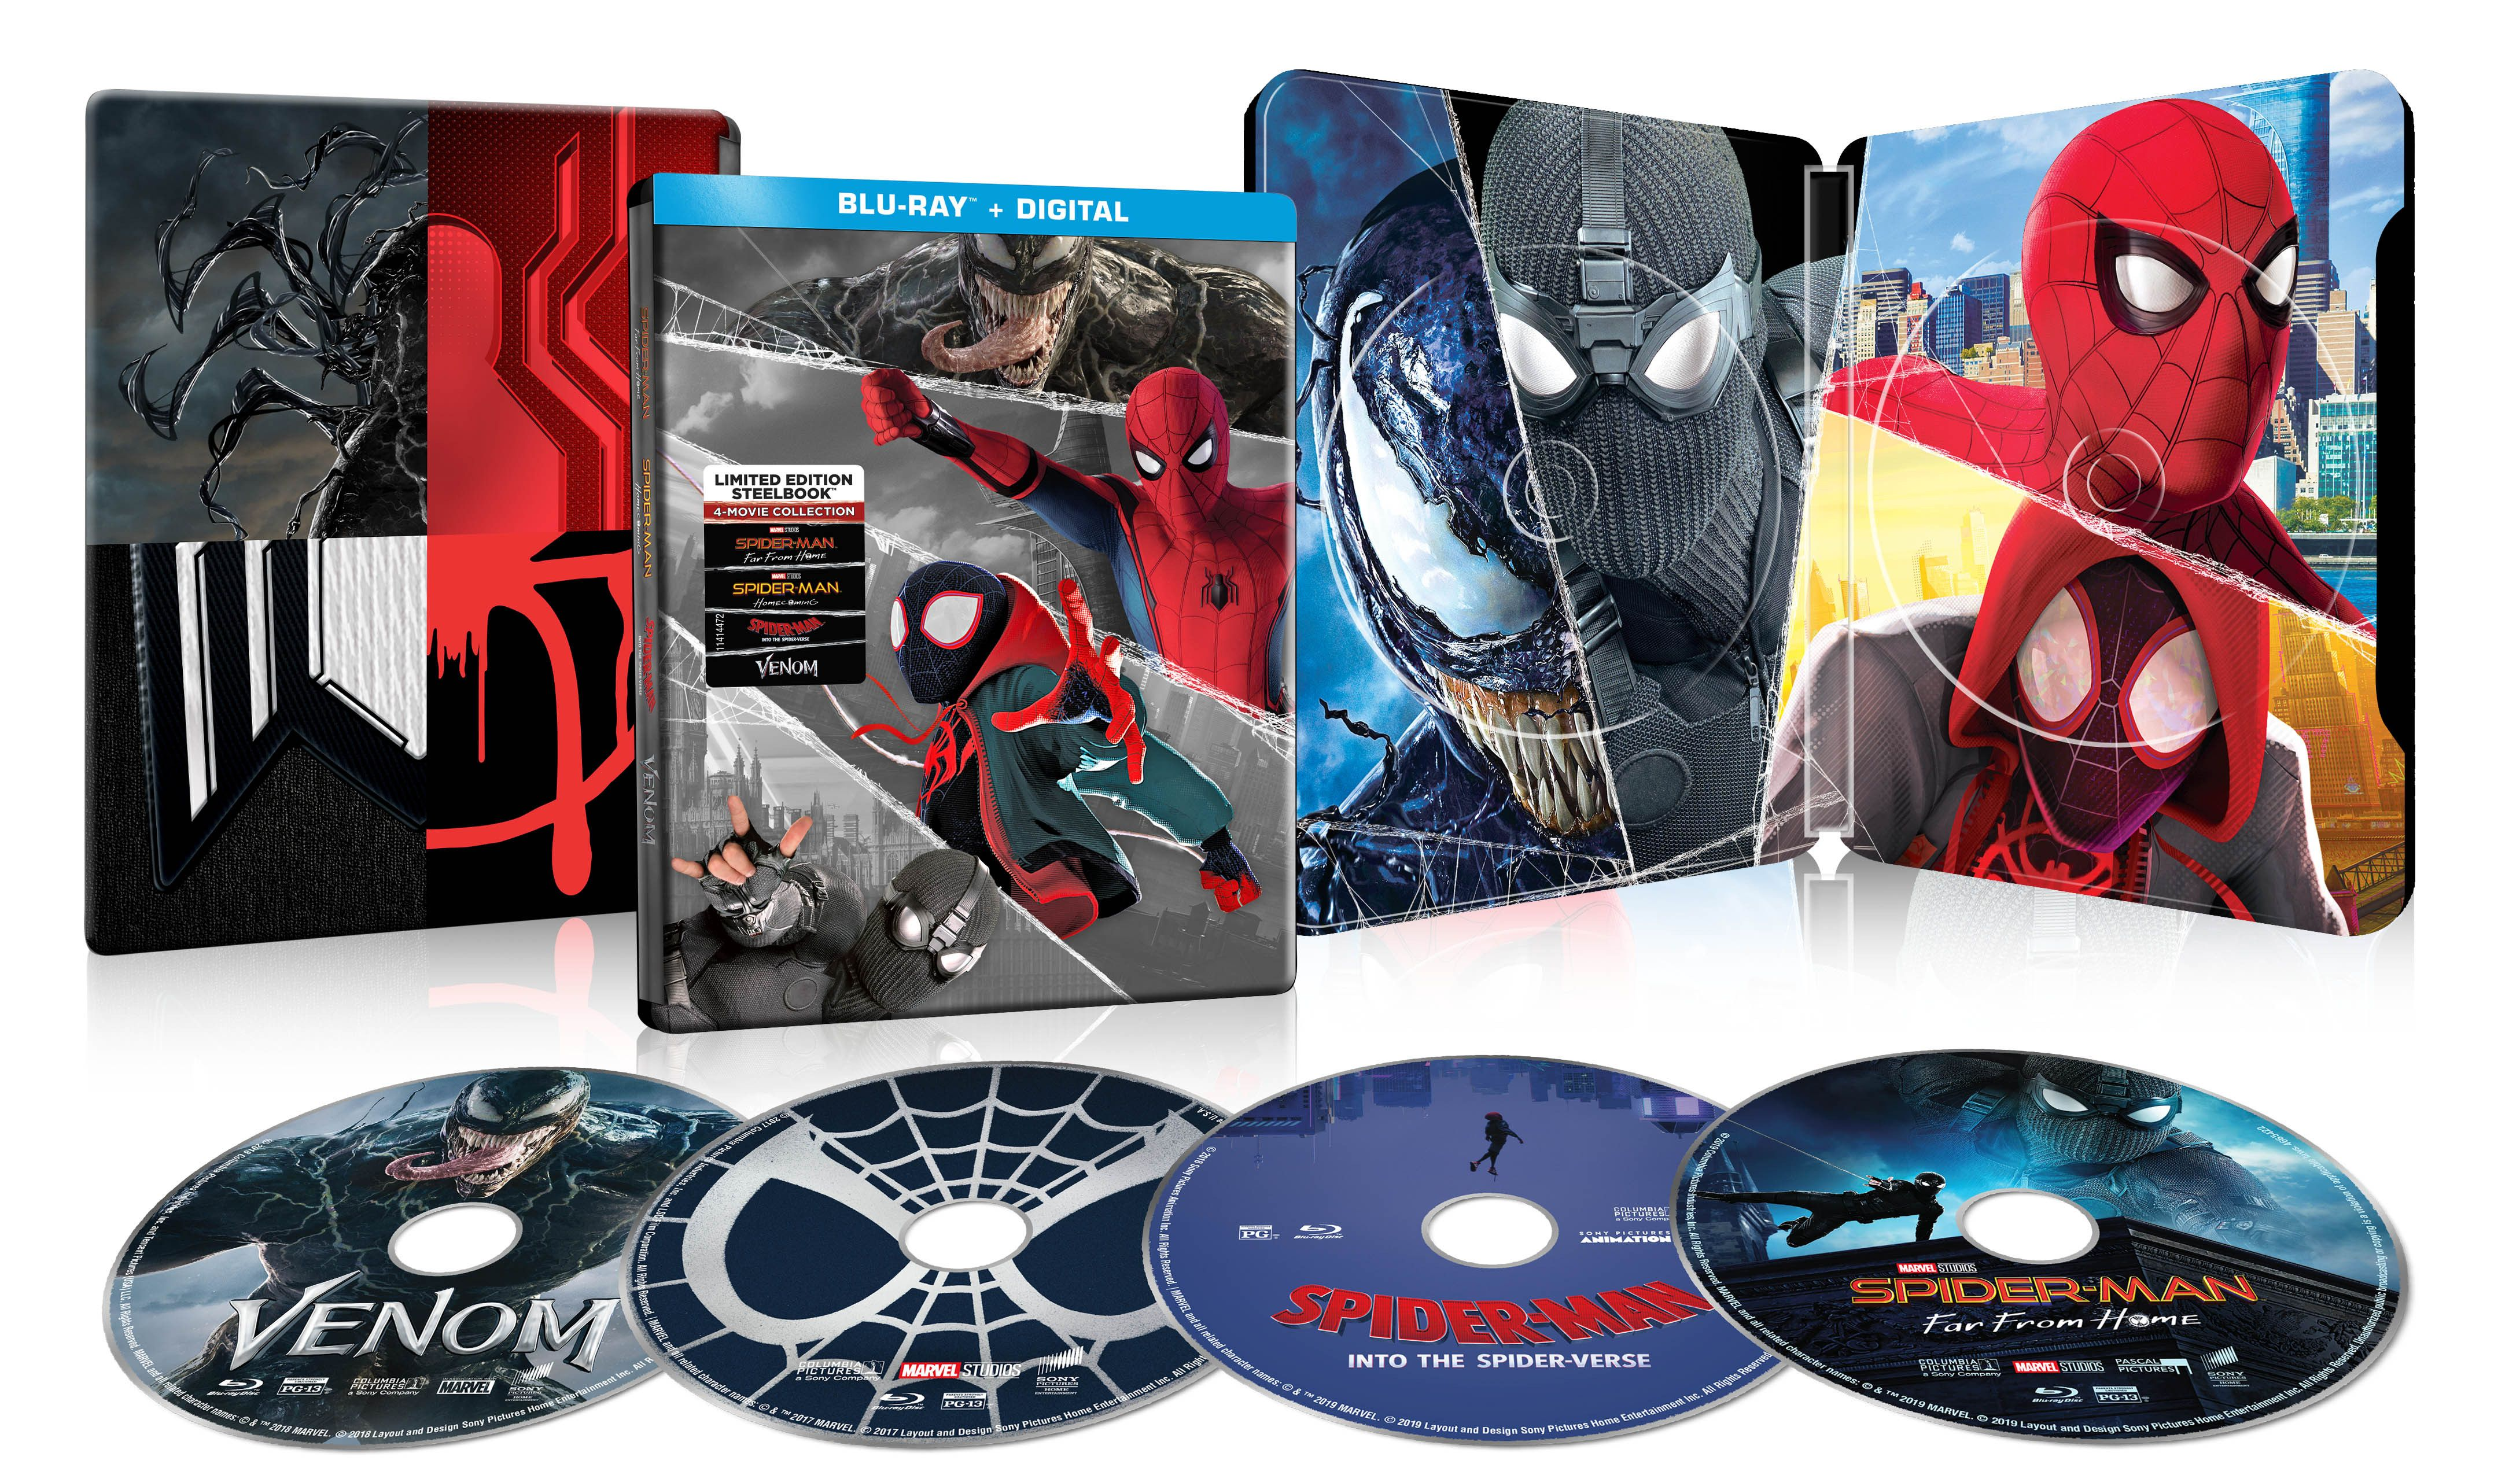 Spider Man 4 Film Steelbook Collection Far From Home Homecoming Into The Spider Verse Venom Blu Ray Digital Copy 29 96 Free In S Spider Verse Spiderman